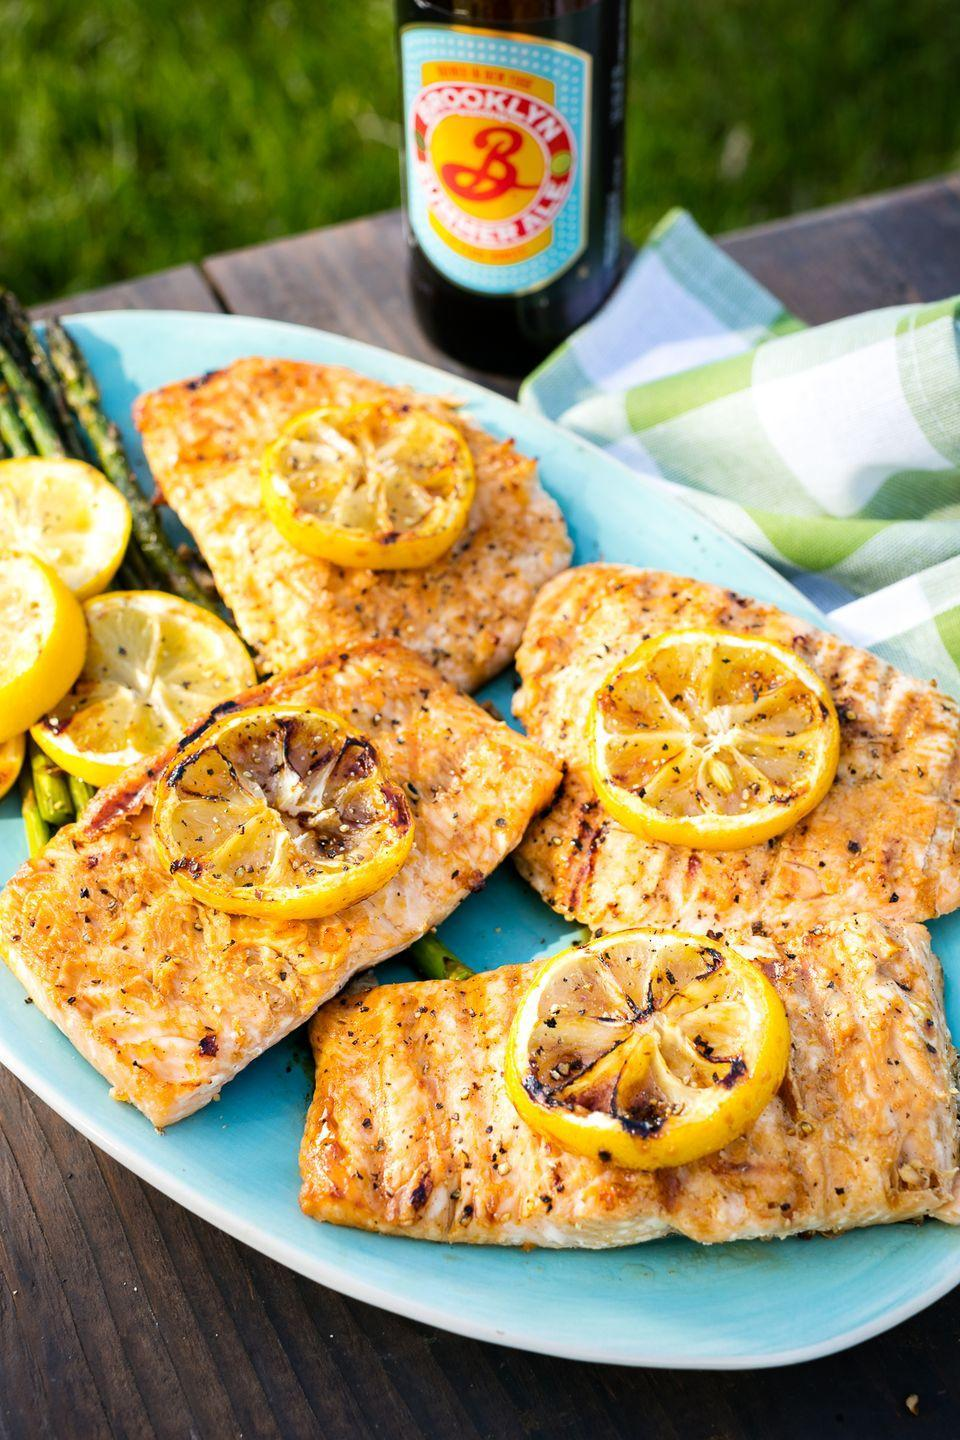 "<p>This simple recipe brings a burst of summer flavor to the table.</p><p>Get the recipe from <a href=""https://www.delish.com/cooking/recipe-ideas/recipes/a47378/lemony-grilled-salmon-recipe/"" rel=""nofollow noopener"" target=""_blank"" data-ylk=""slk:Delish"" class=""link rapid-noclick-resp"">Delish</a>.</p>"